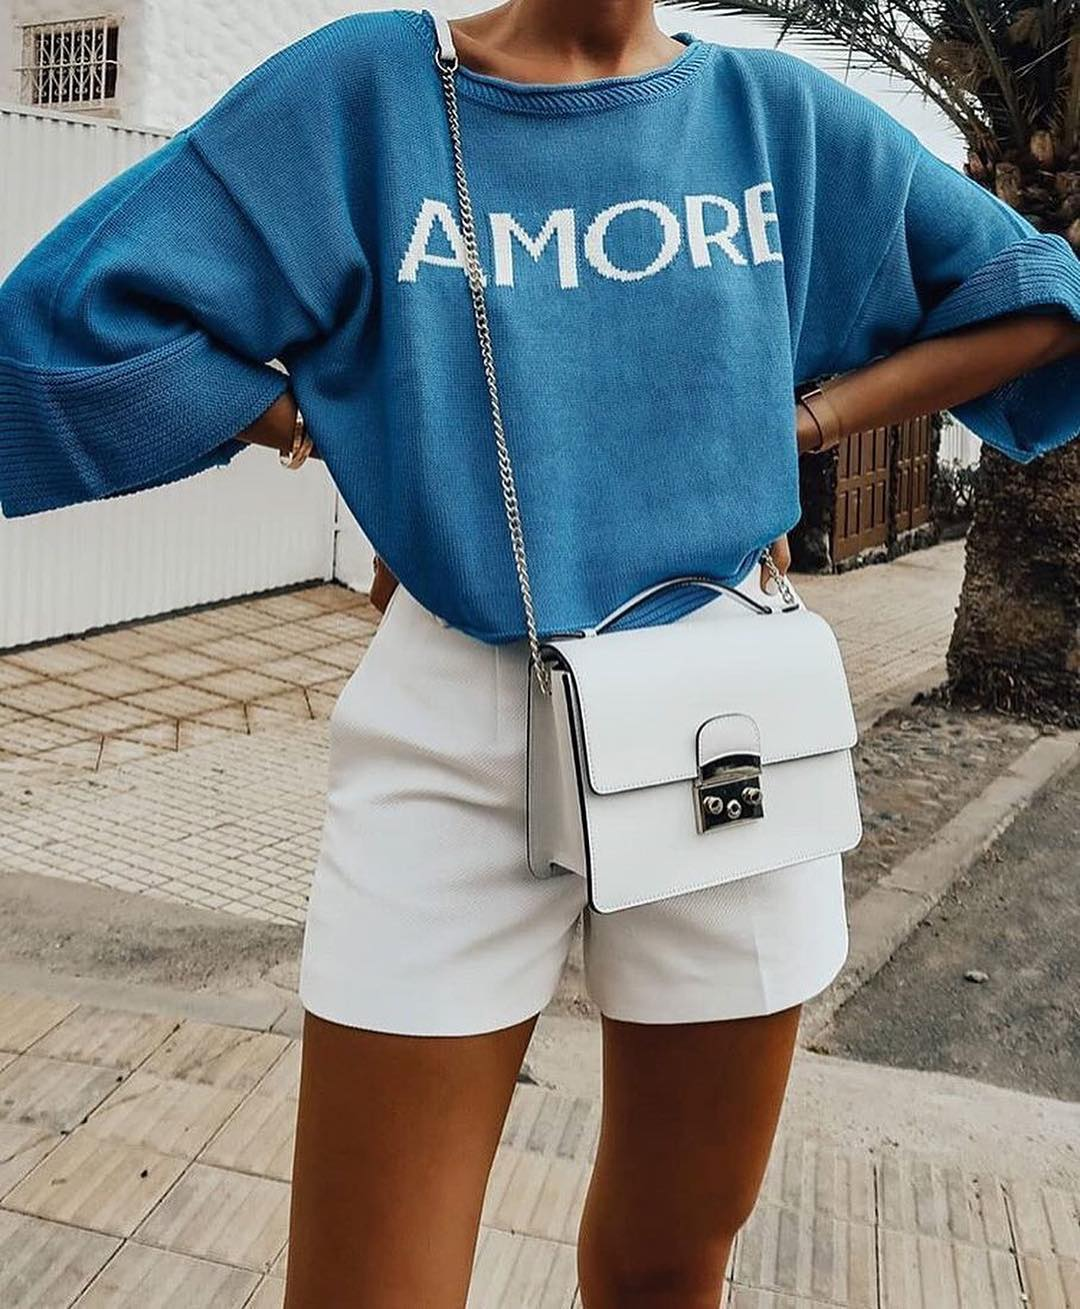 Oversized blue sweater and white shorts for spring holiday 2021